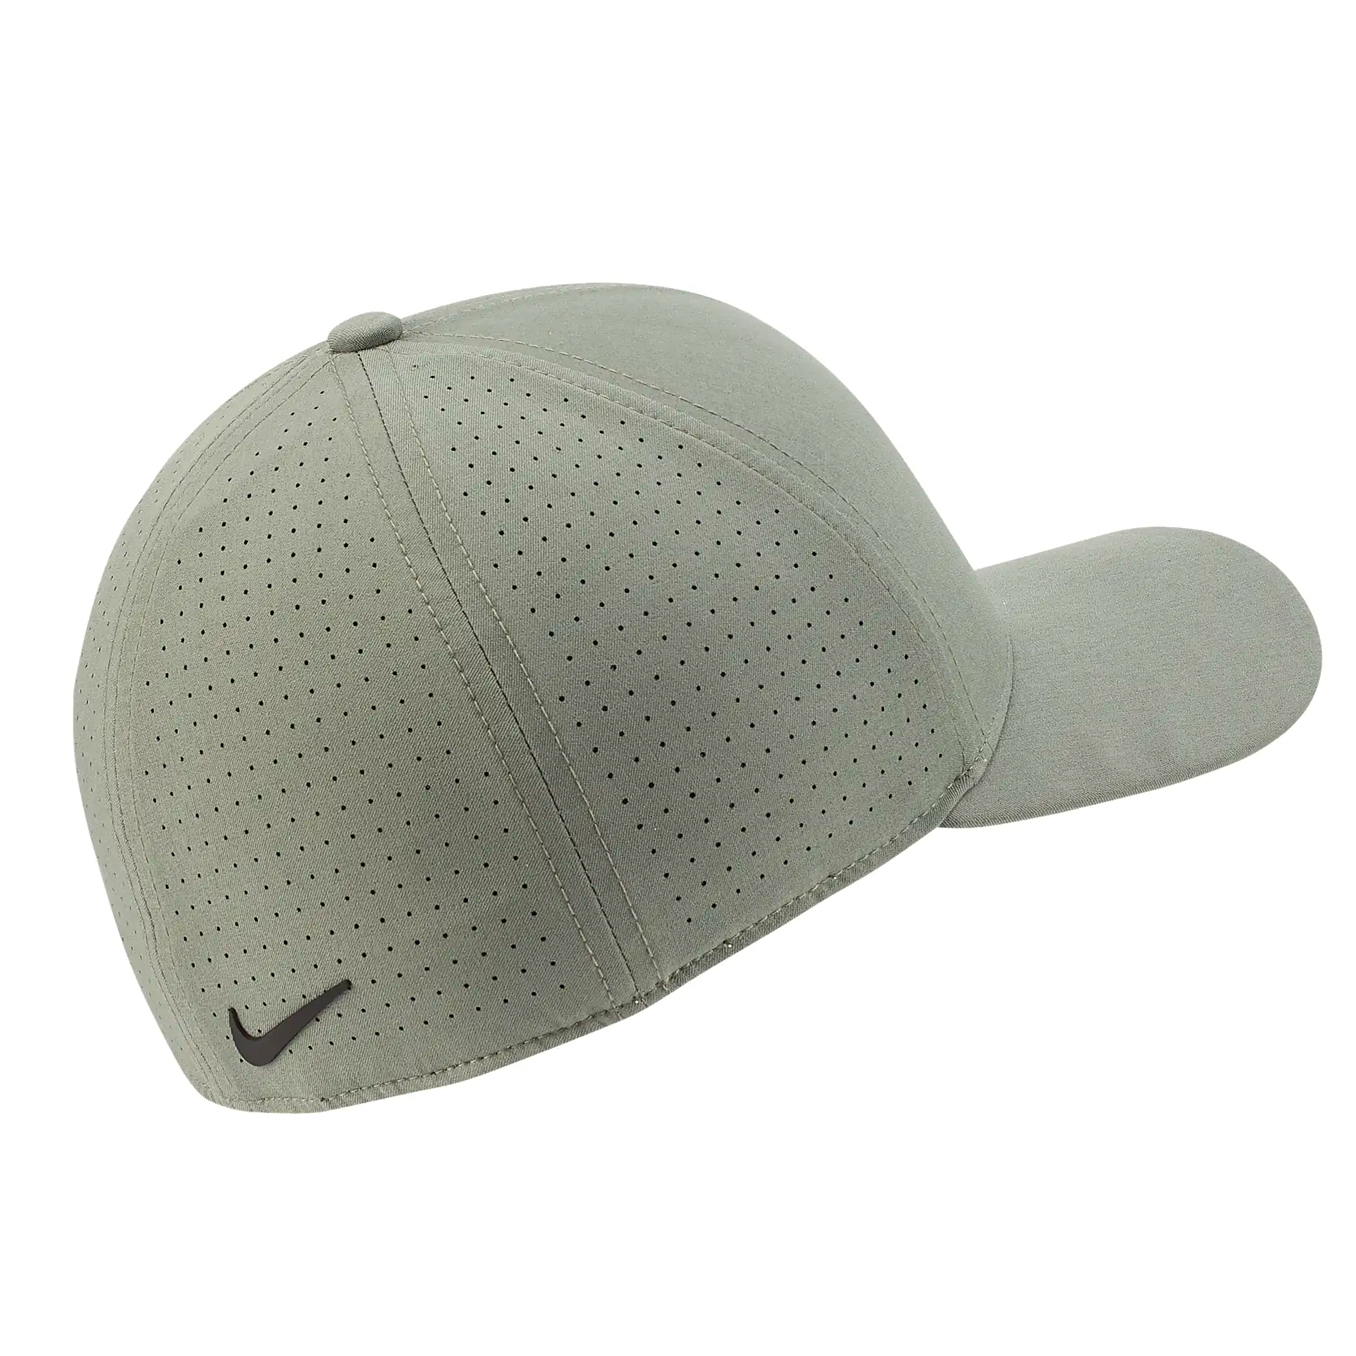 363ba39e TW Aerobill Classic 99 Cap Vintage Lichen - SS19 | Clothing | Nike | All  Square Golf